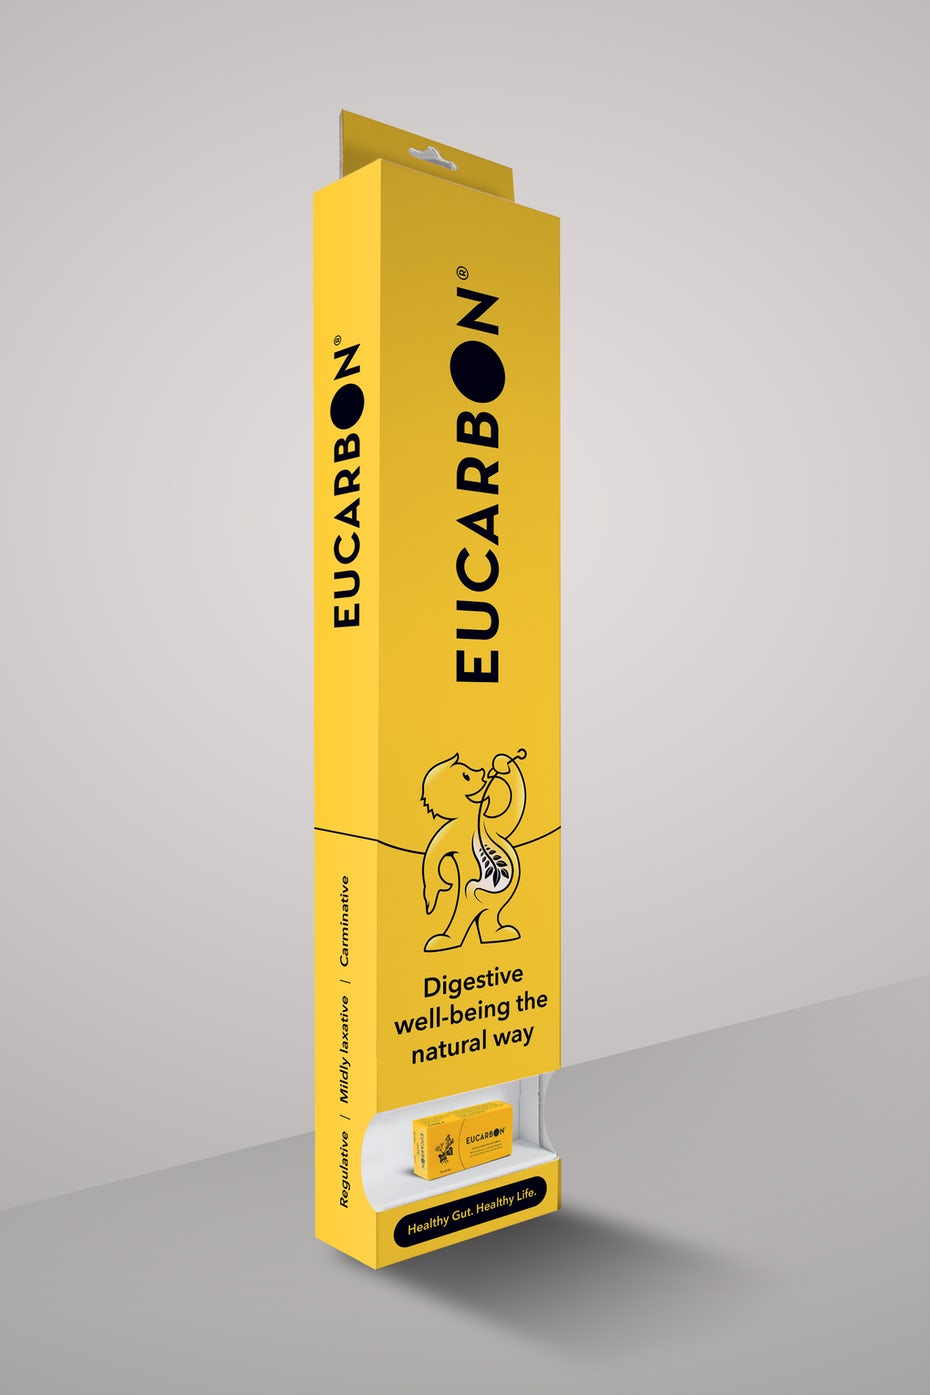 A bright, yellow medical packaging